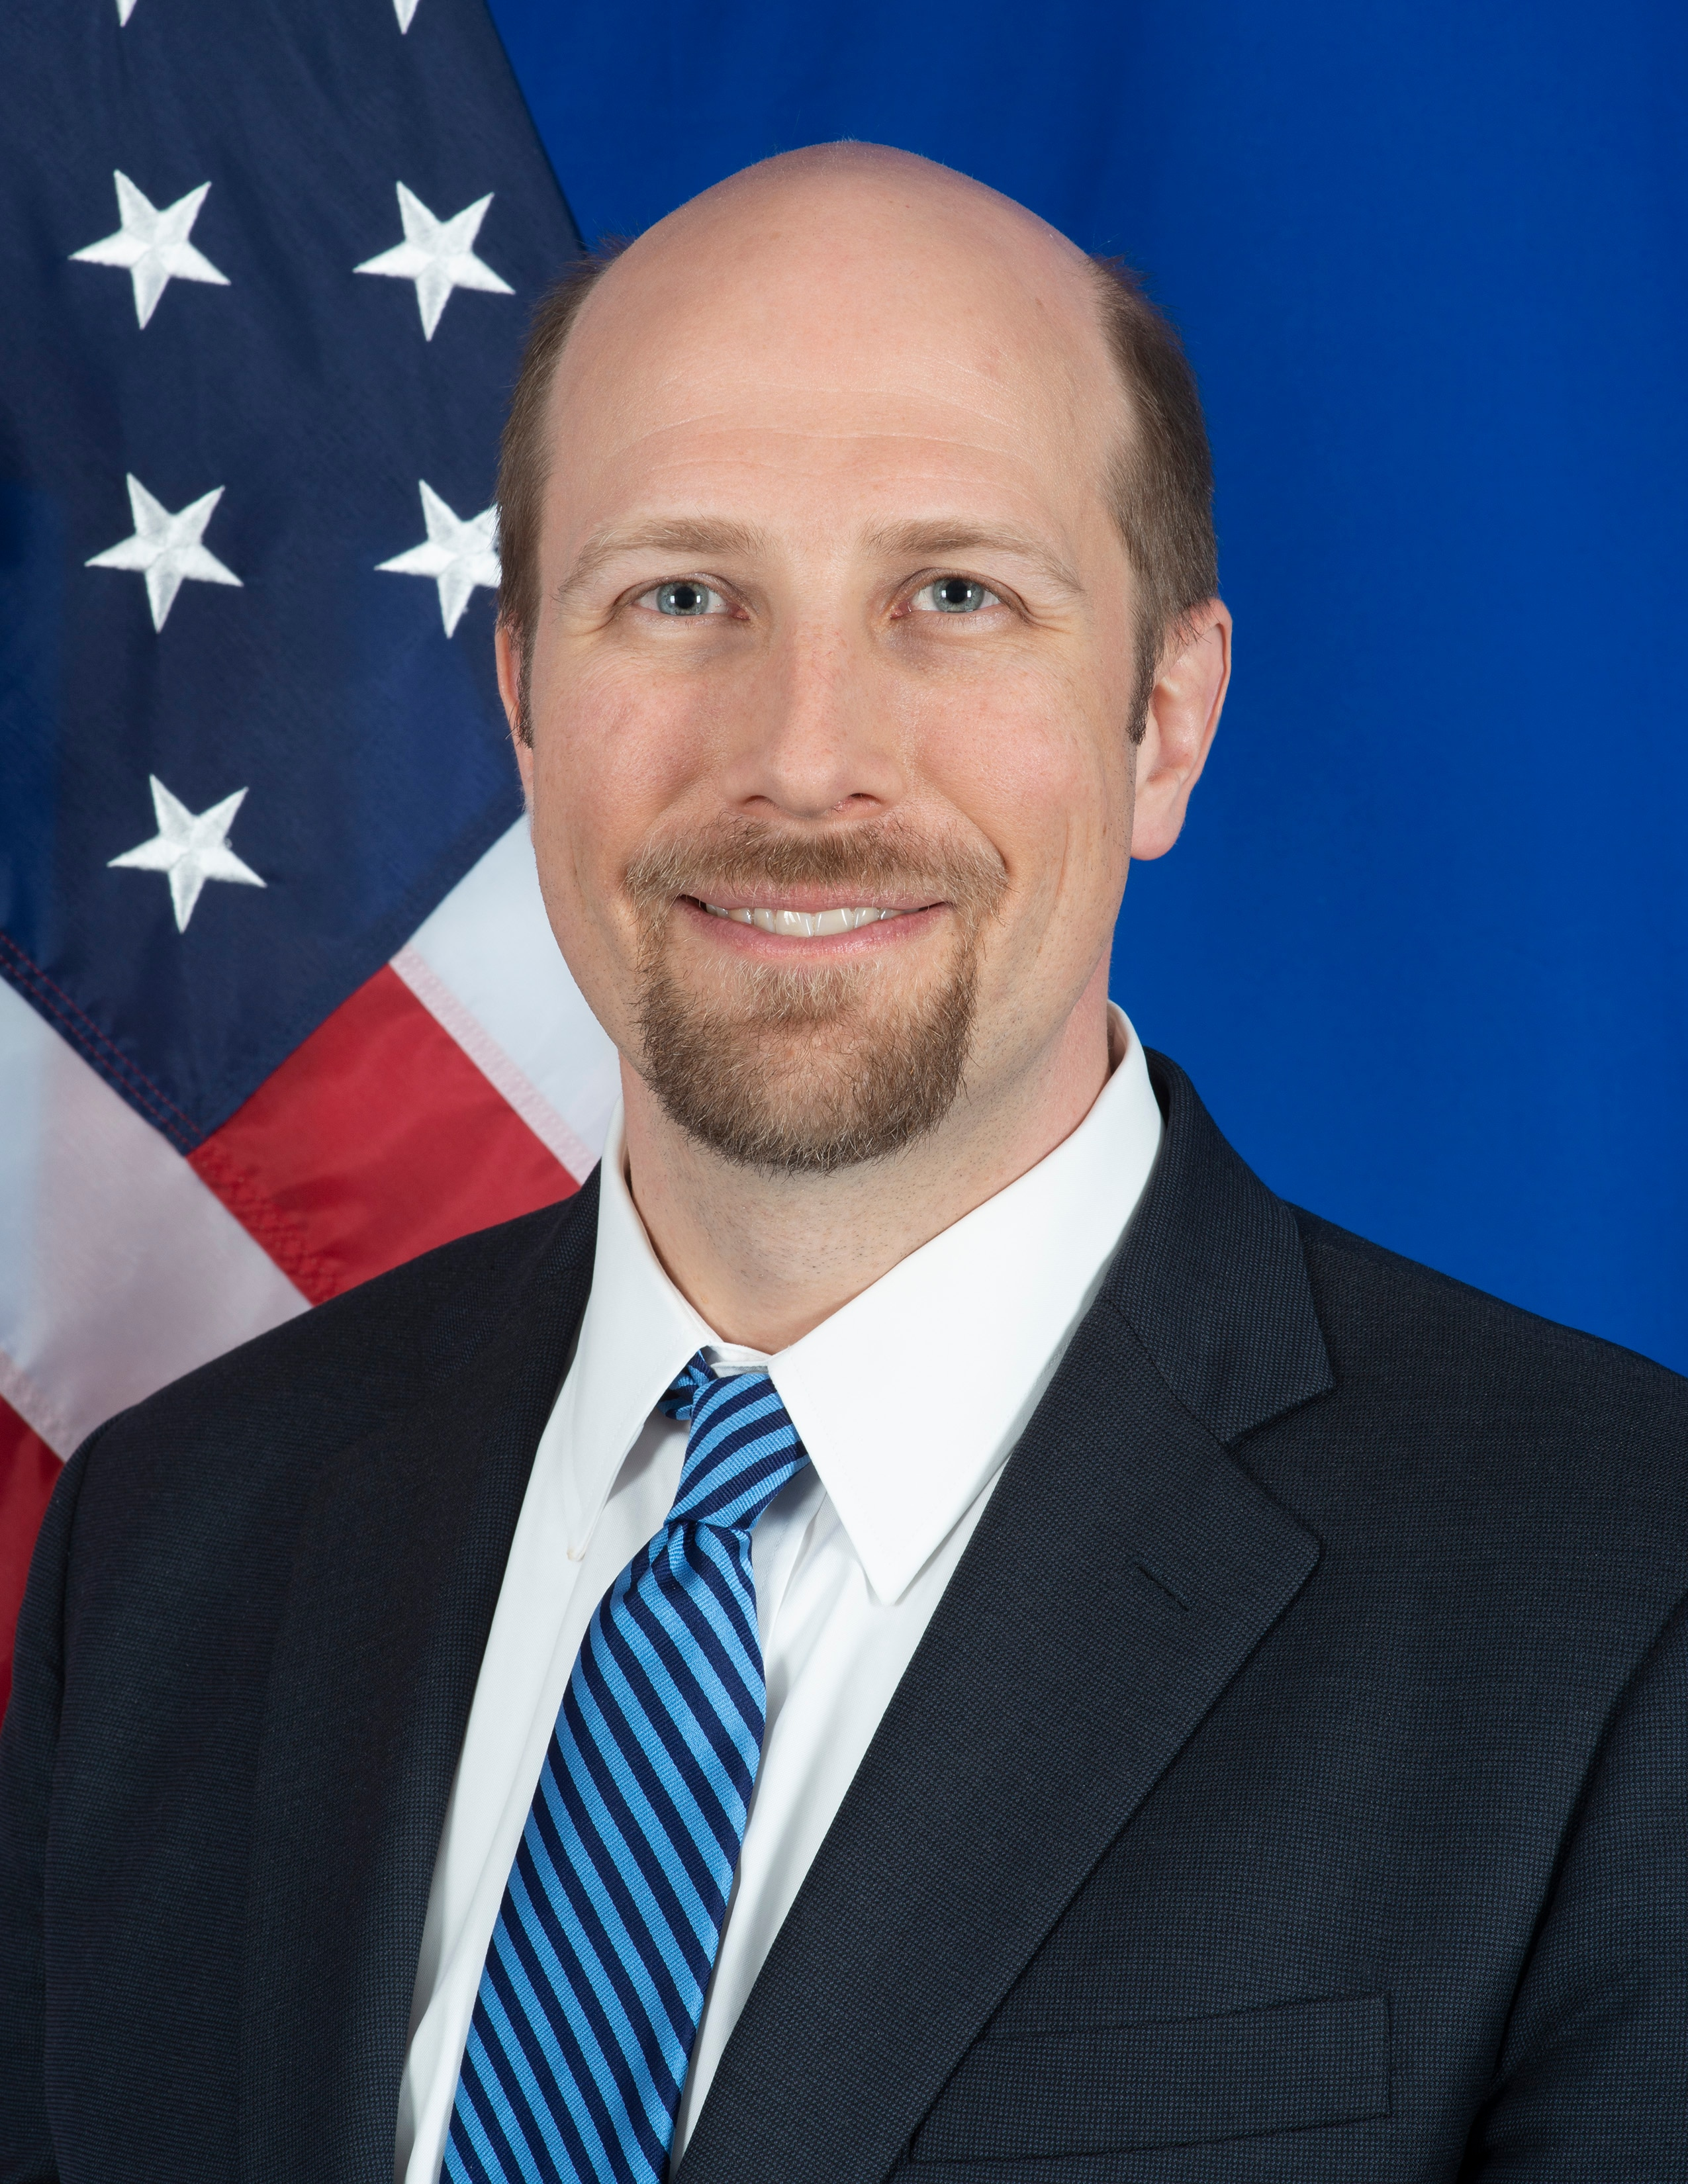 Luke Peterson, Acting Deputy Assistant Secretary for Research and Analytics, Bureau of Global Public Affairs